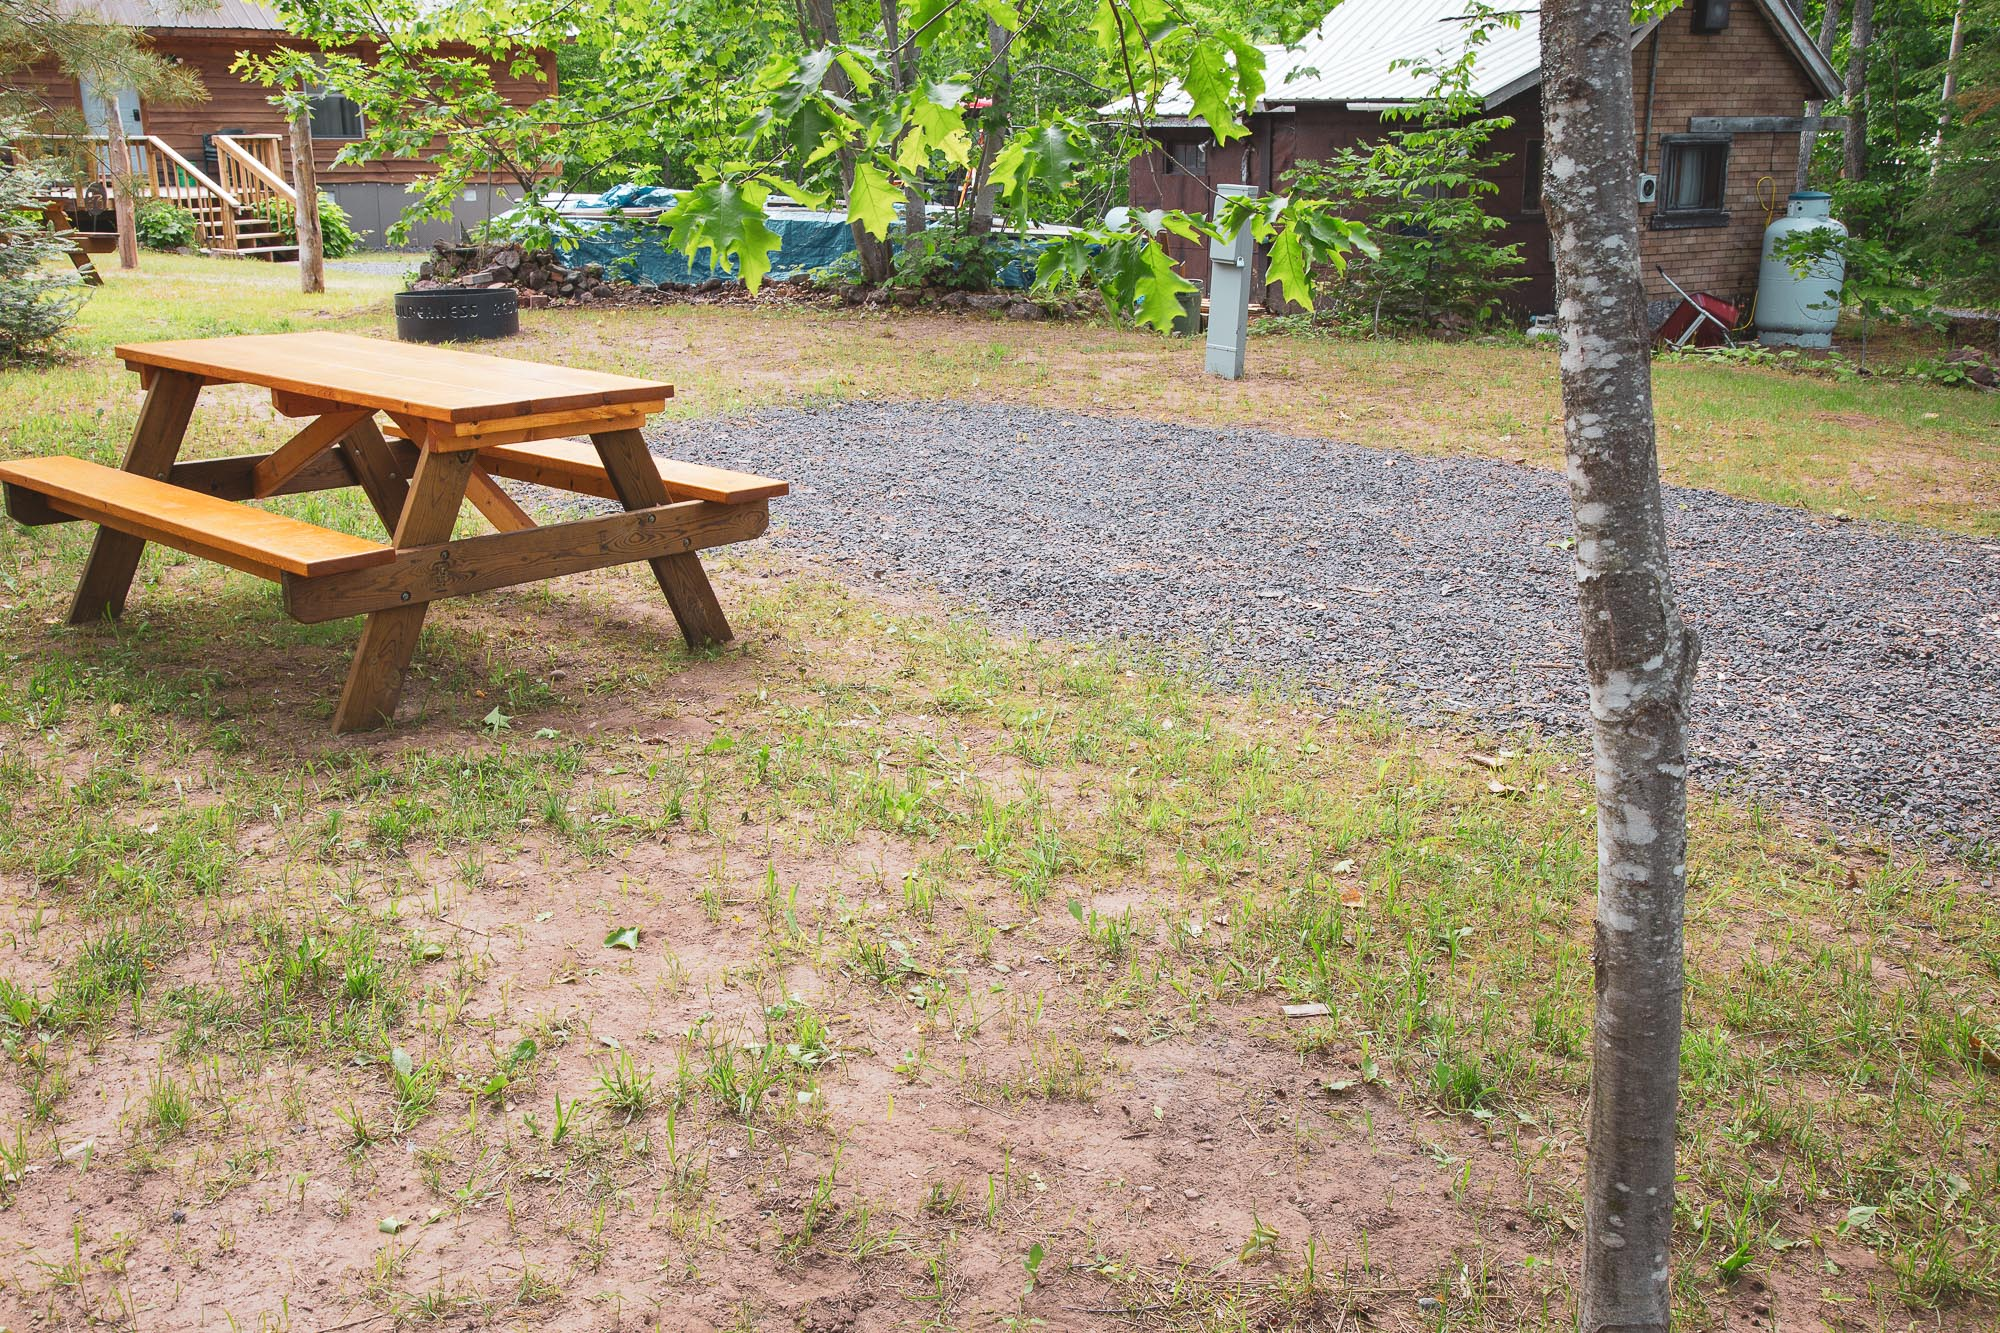 Photo of Campground Site 6 at the Wilderness Resort in Lac La Belle Michigan